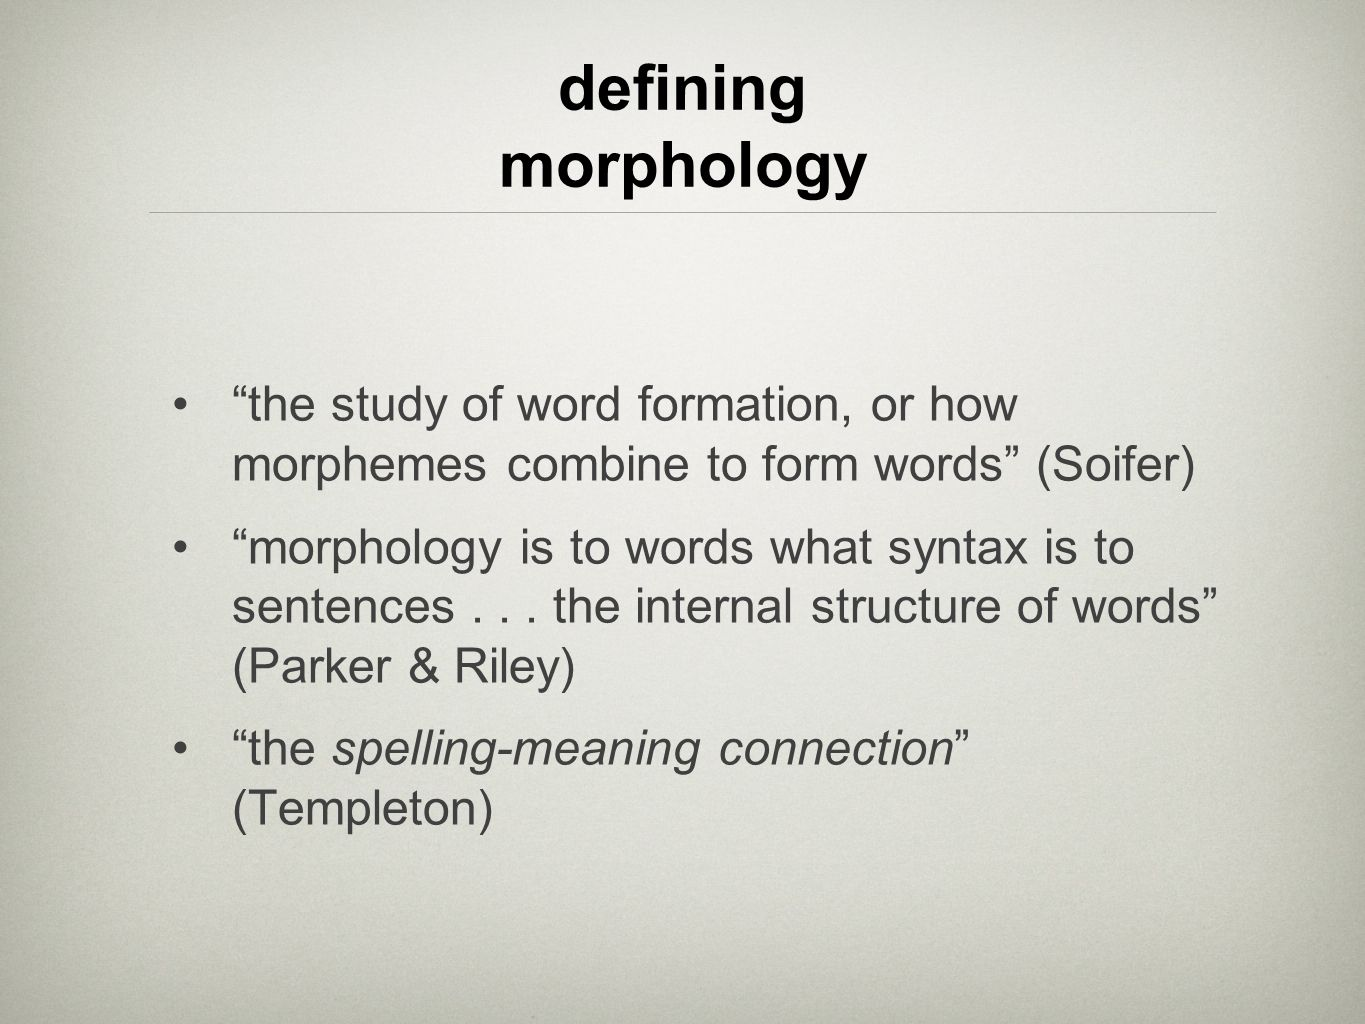 the study of word formation, or how morphemes combine to form words (Soifer) morphology is to words what syntax is to sentences... the internal struct